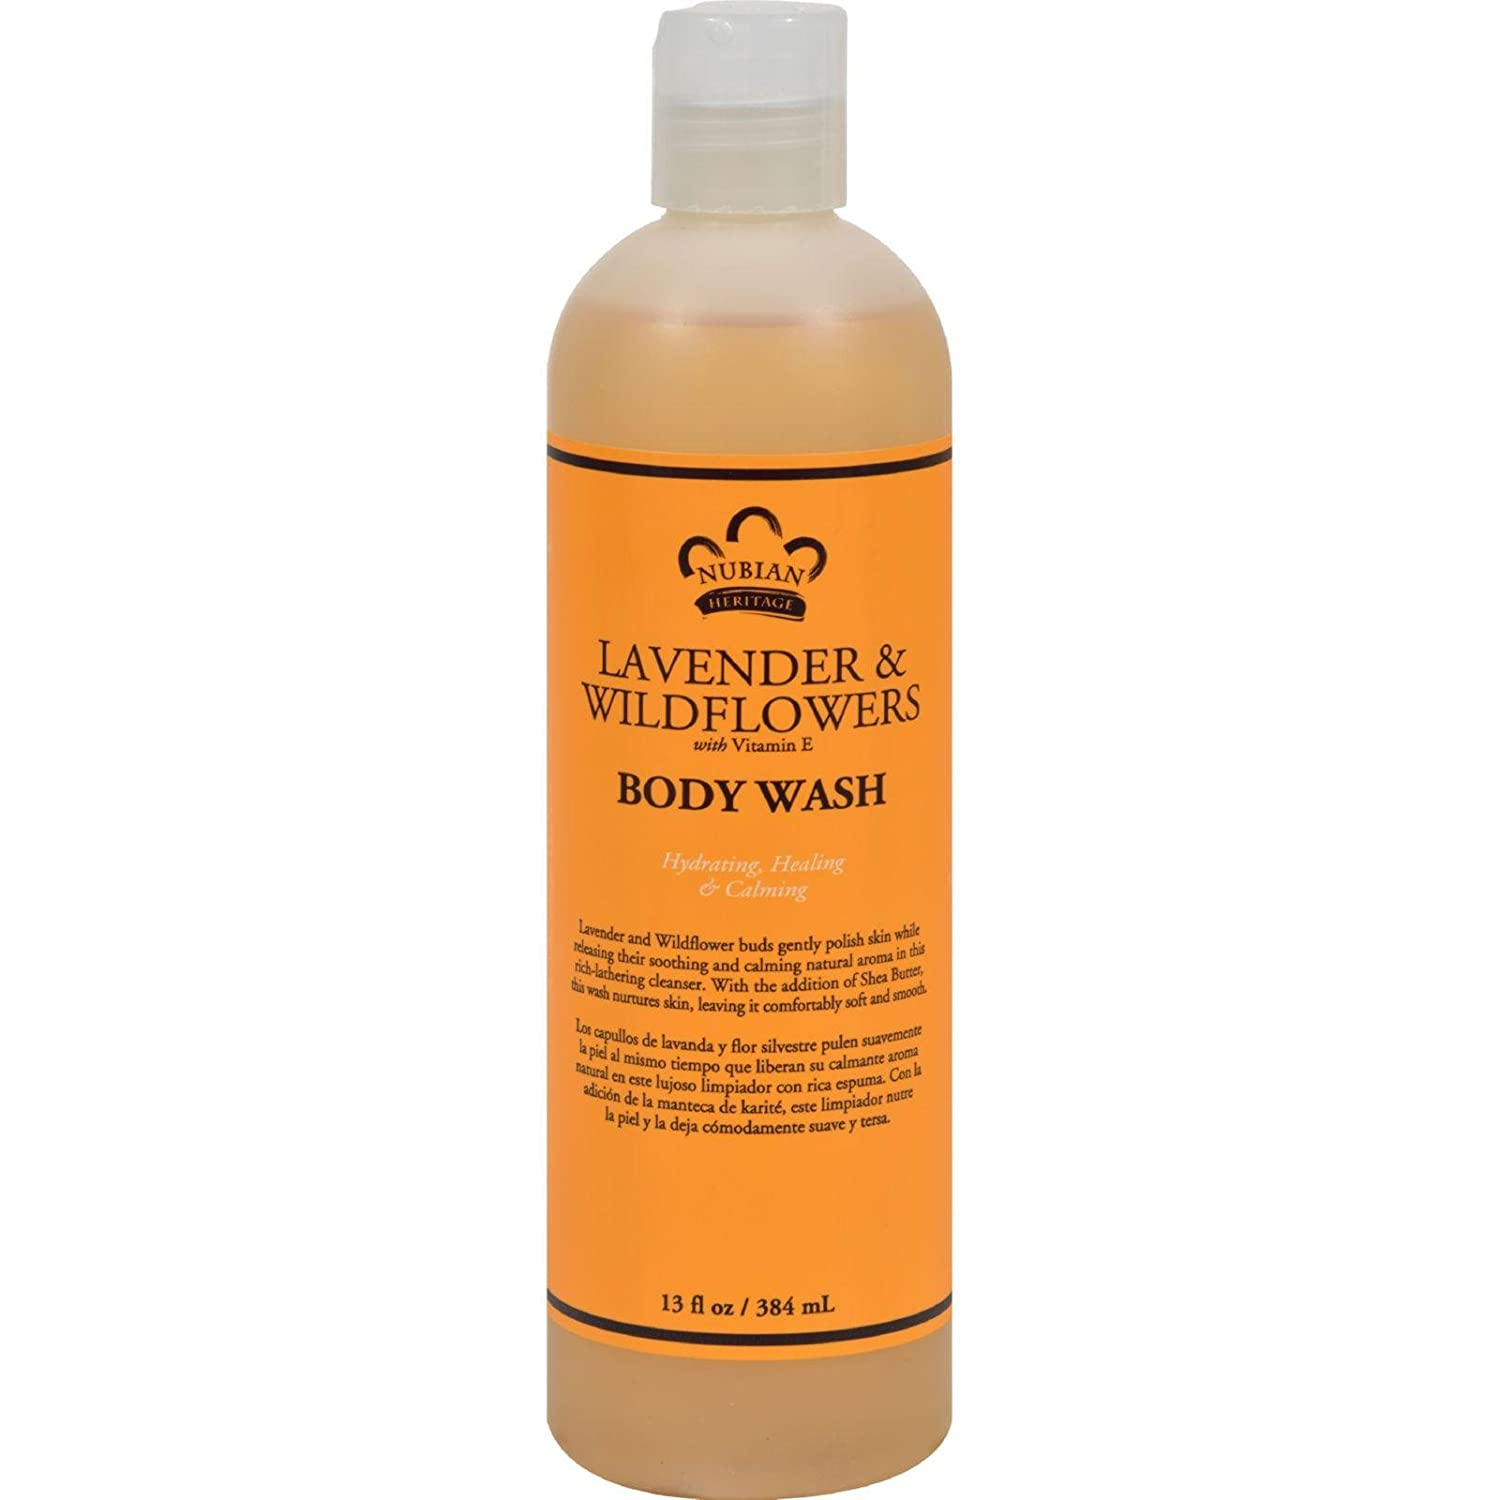 Nubian Heritage Lavender & Wildflowers Body Wash